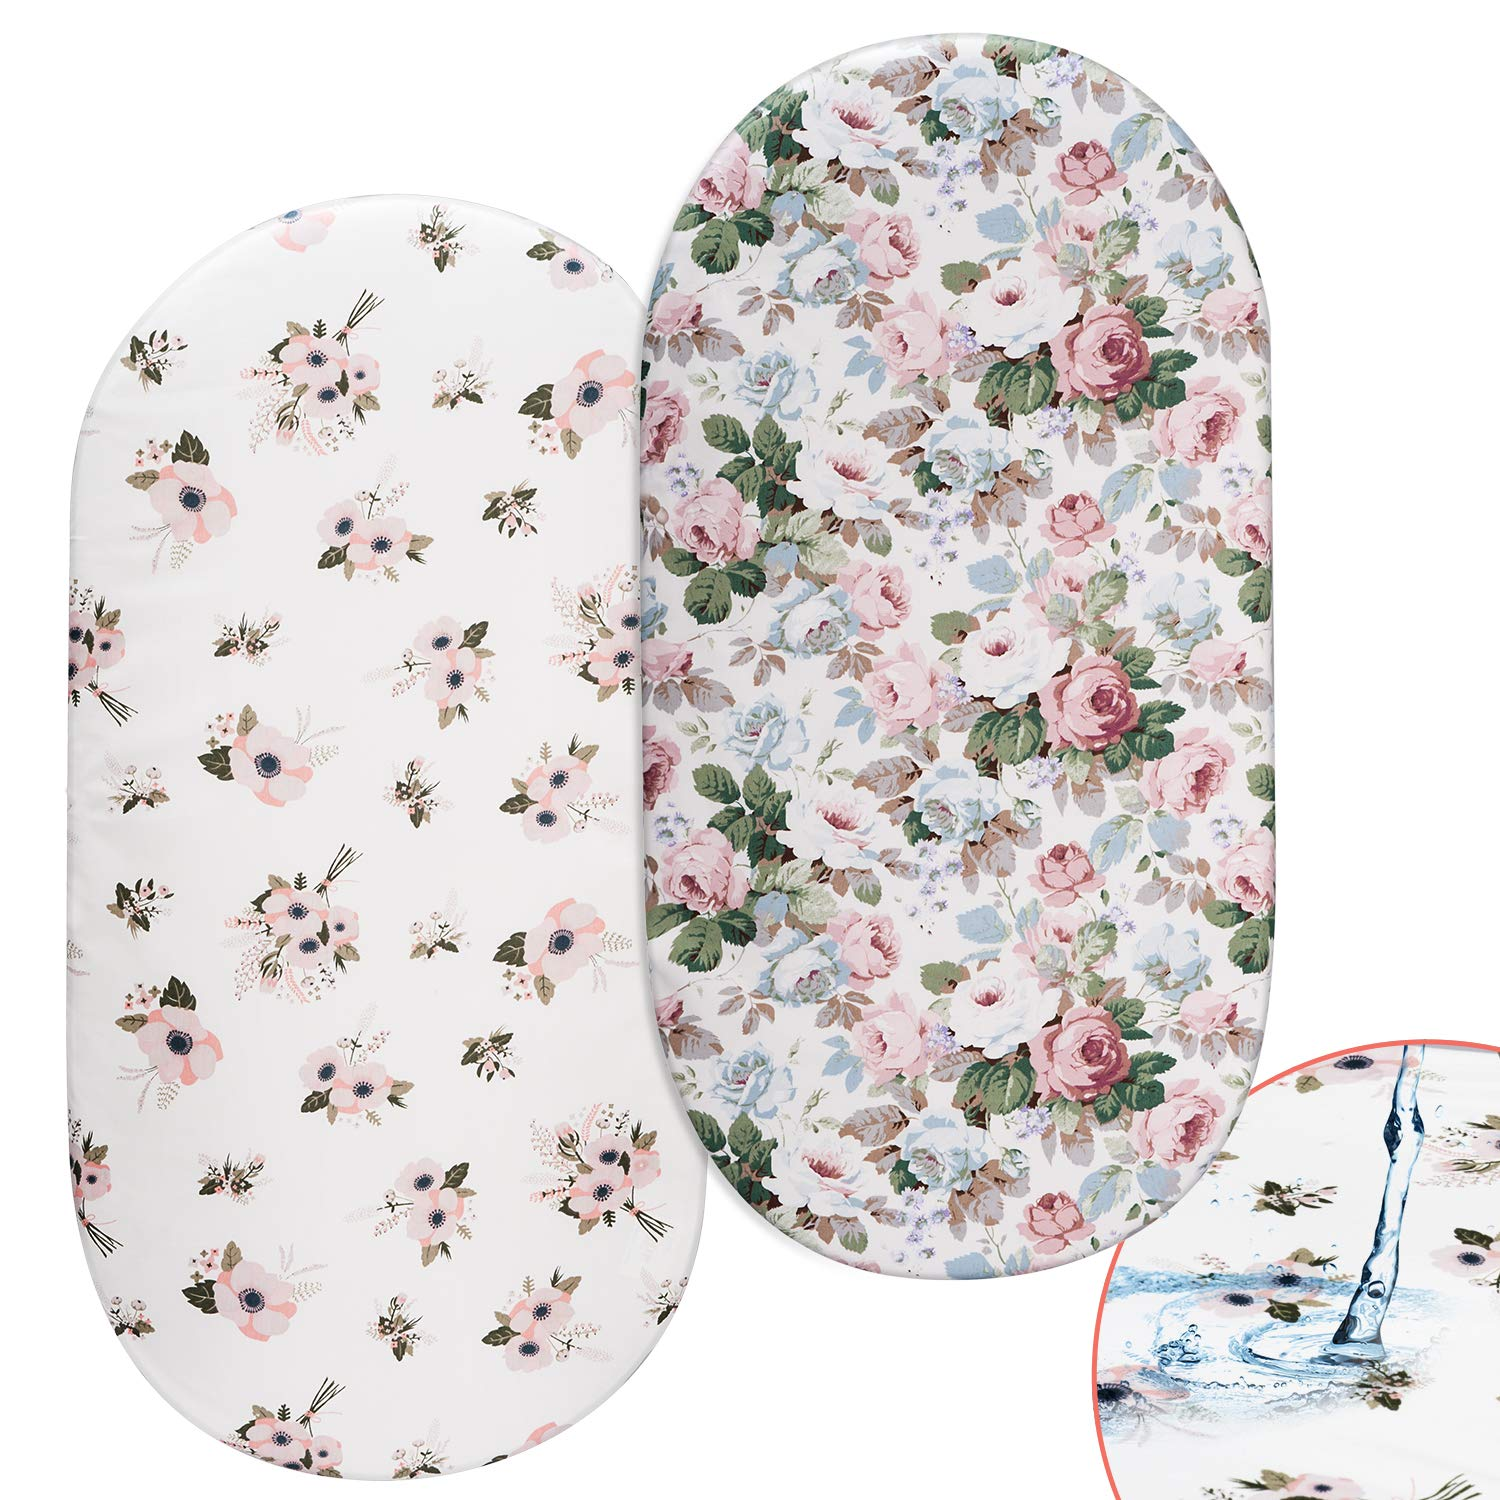 Floral Bassinet Sheets, Momcozy 2 Pack Waterproof Sheet Set for Baby Girls, Fit for Bassinet Mattress Pad Cover, Like Oval Halo, Chicco Lullago, Arms Reach, Ingenuity by Momcozy